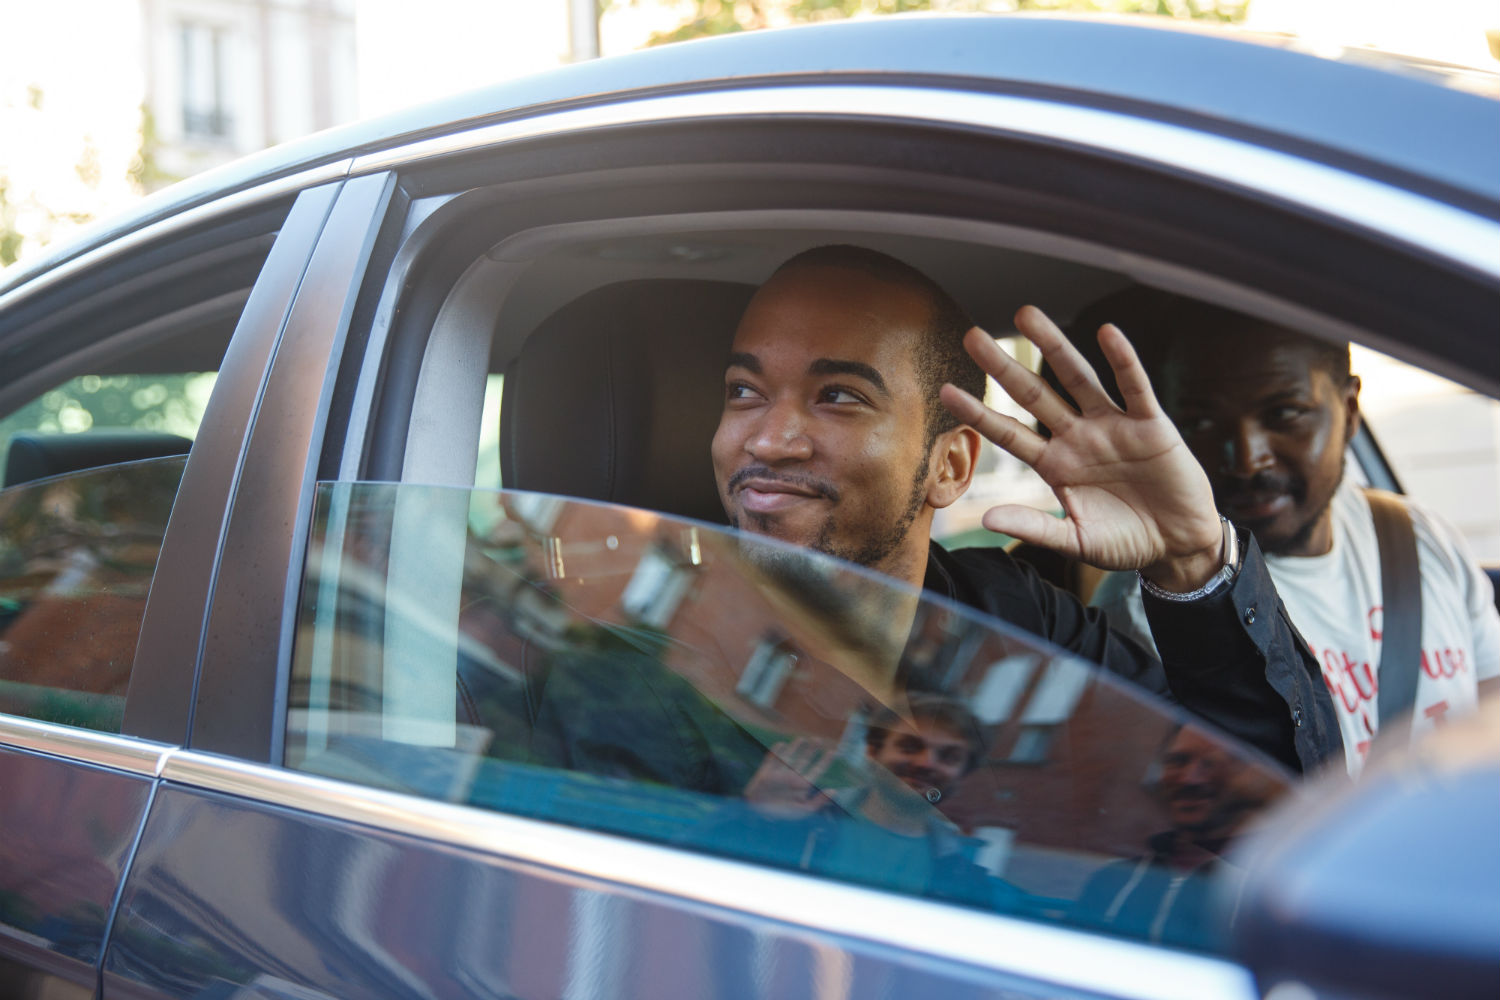 Where to, Britain? – Is Uber's new branded content a success?